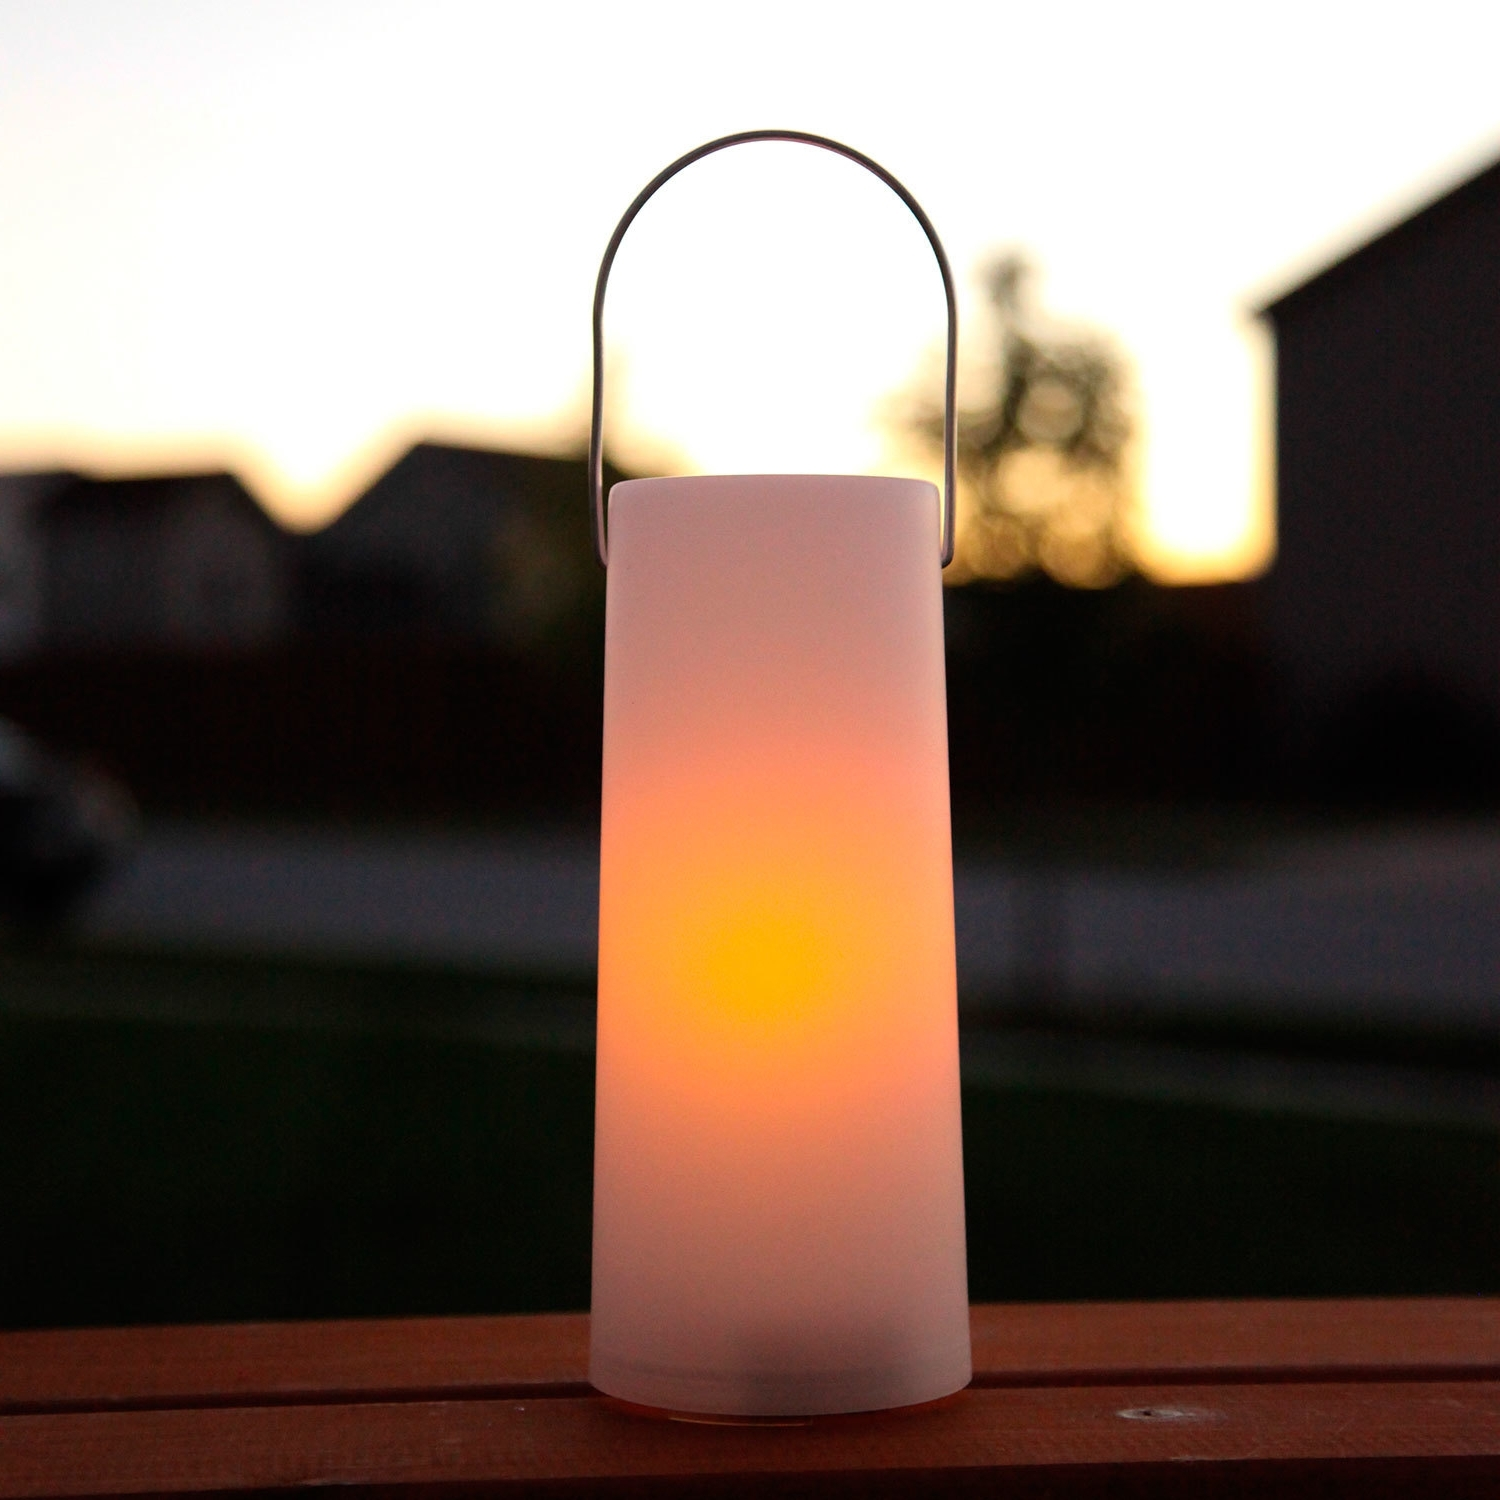 Outdoor Candle Lantern Lights Led Battery Operated Lanterns With Intended For Well Known Outdoor Lanterns With Battery Candles (View 10 of 20)